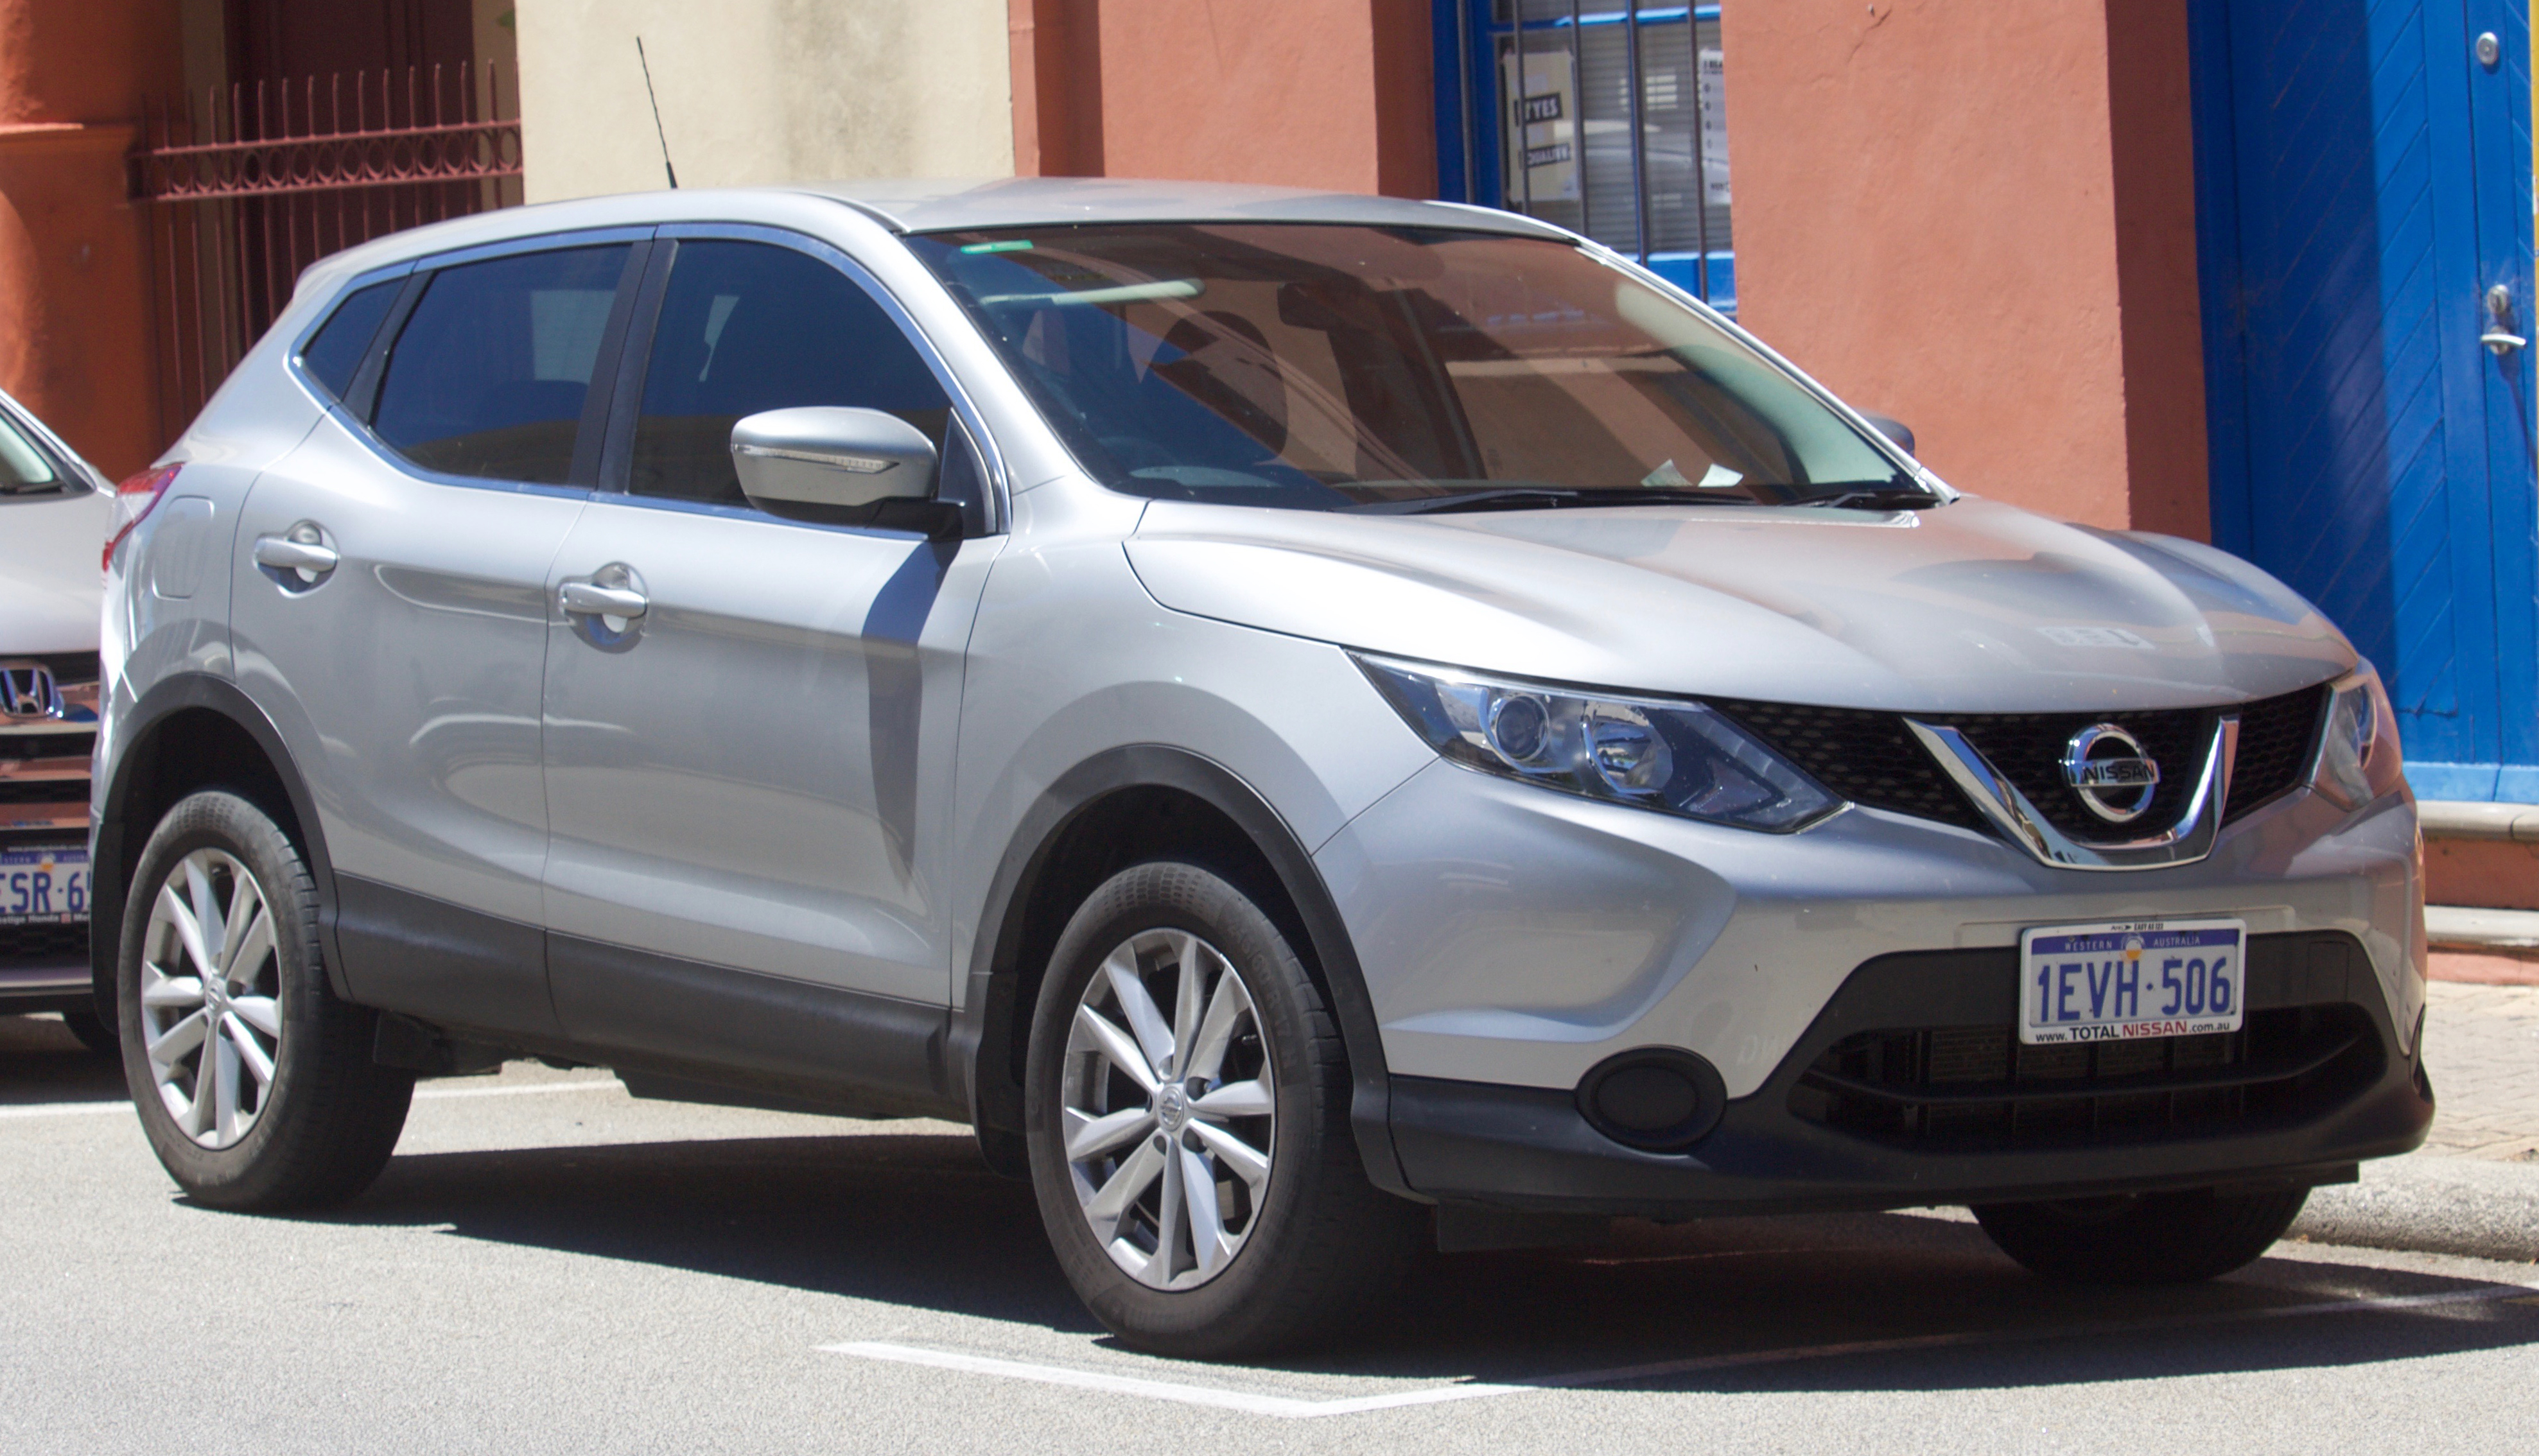 file 2015 nissan qashqai j11 st wagon 2017 11 18 wikimedia commons. Black Bedroom Furniture Sets. Home Design Ideas